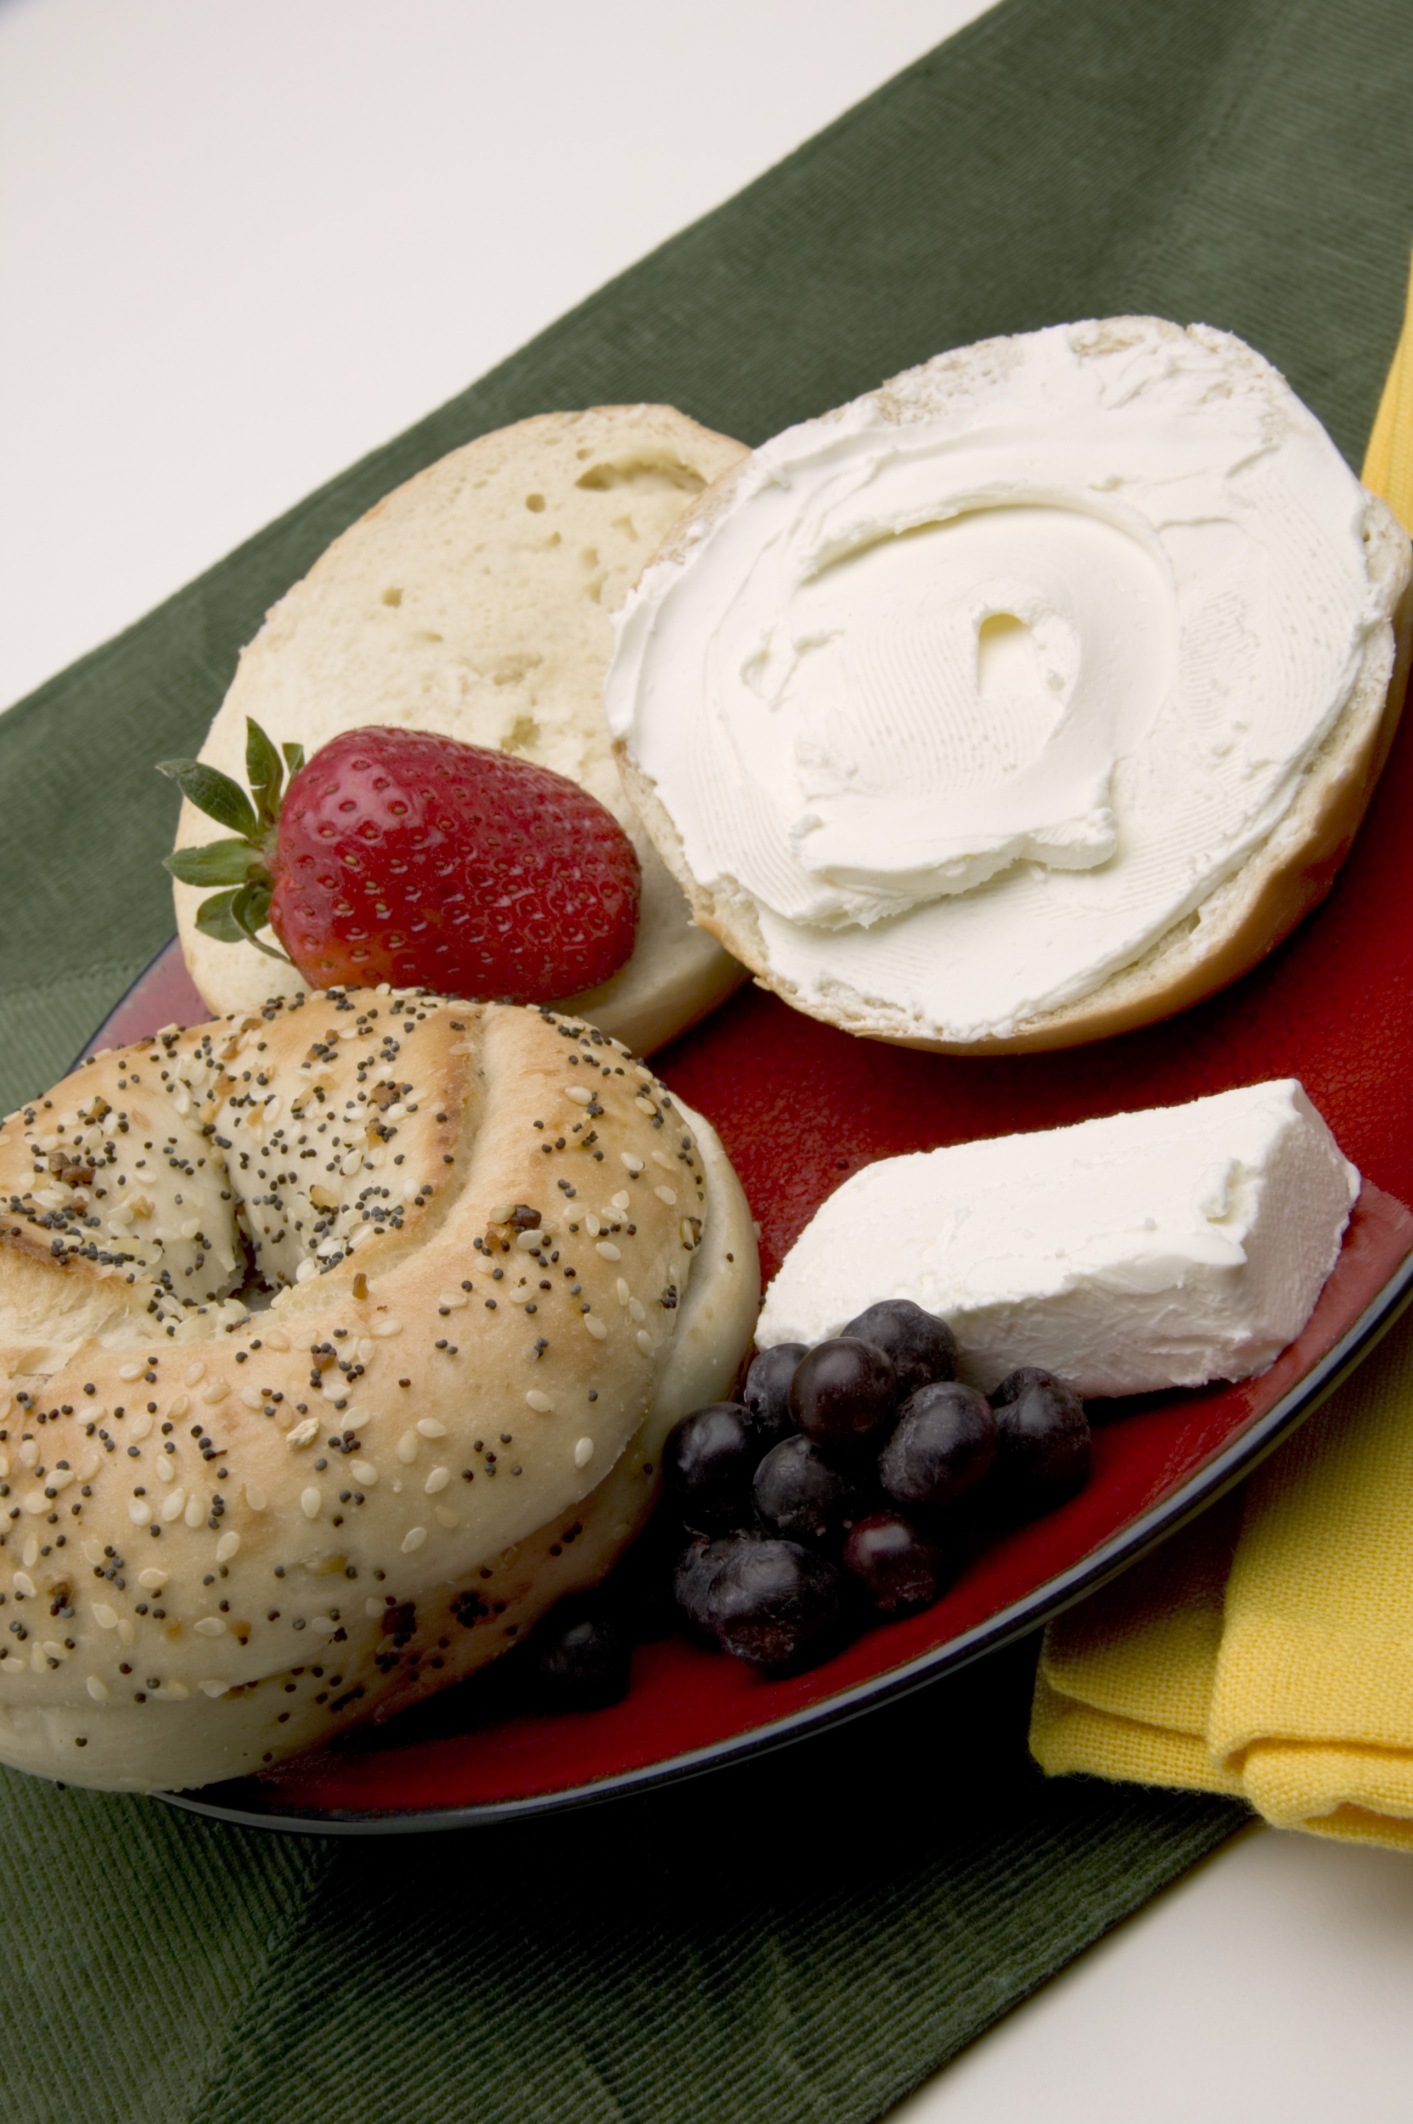 Wondrous What Can Be Eaten With Cream Cheese On A Low Carb Diet Download Free Architecture Designs Intelgarnamadebymaigaardcom